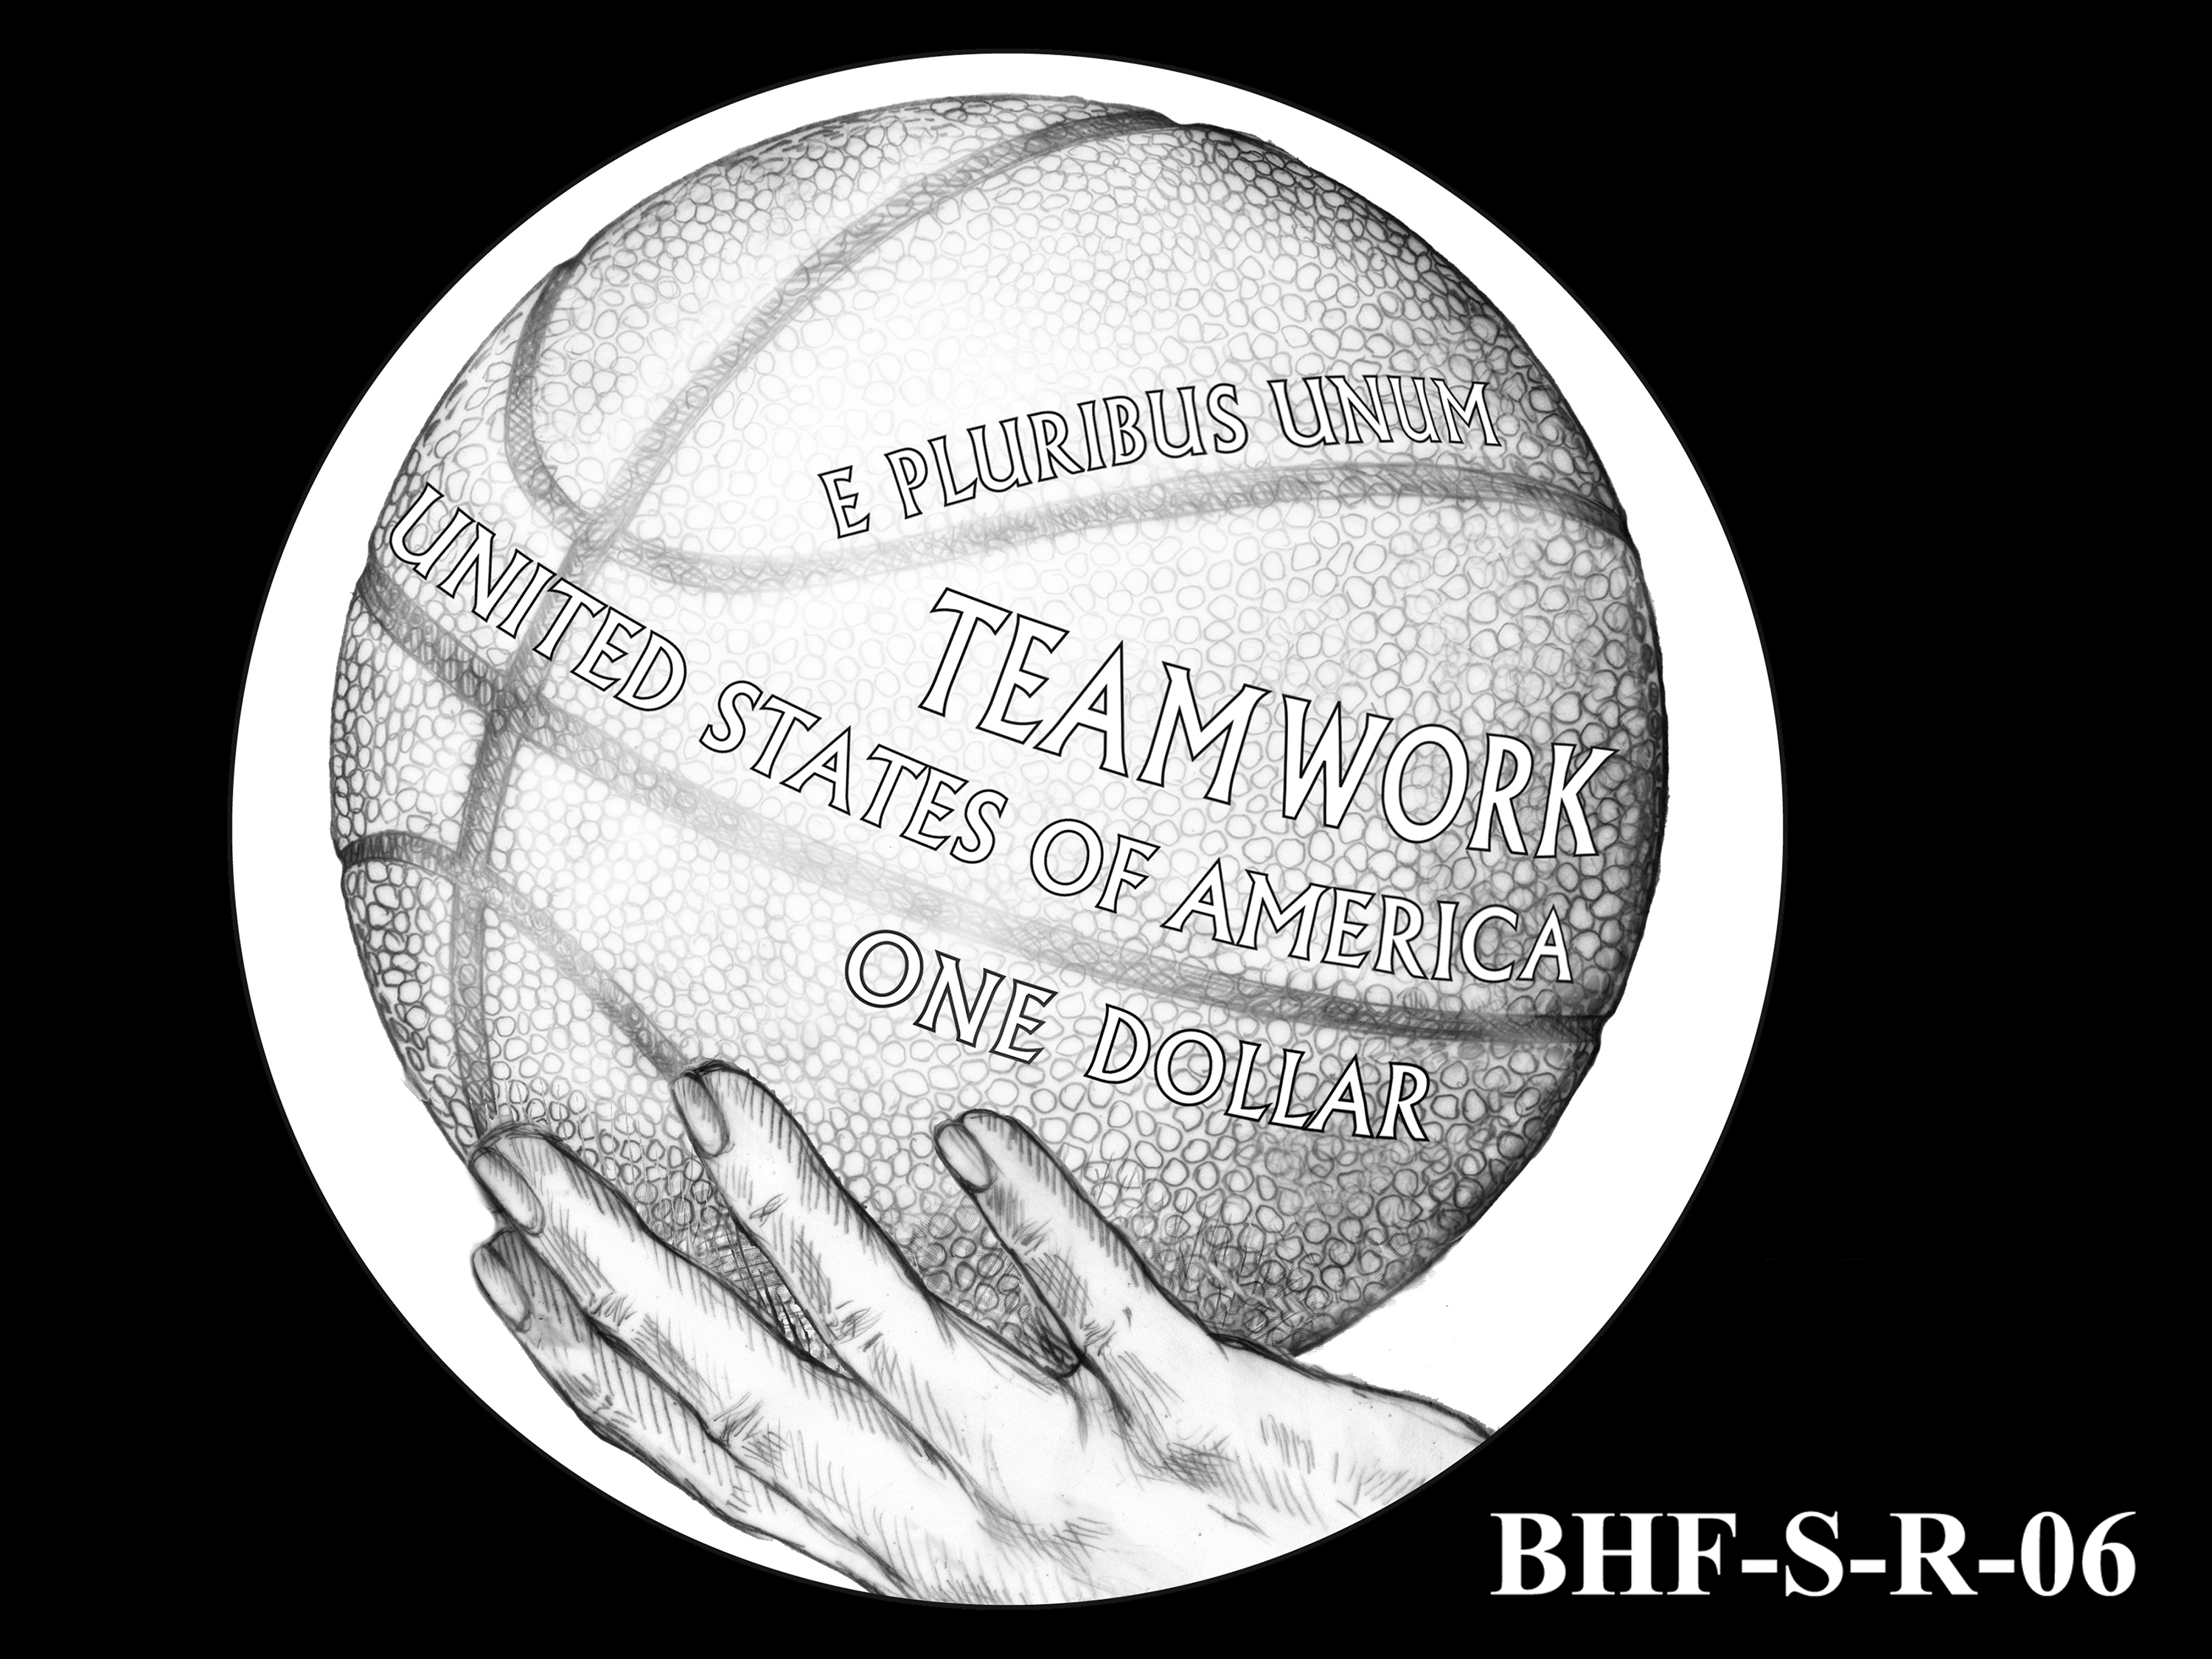 BHF-S-R-06 -- 2020 Basketball Hall of Fame Commemorative Coin Program - Silver Reverse